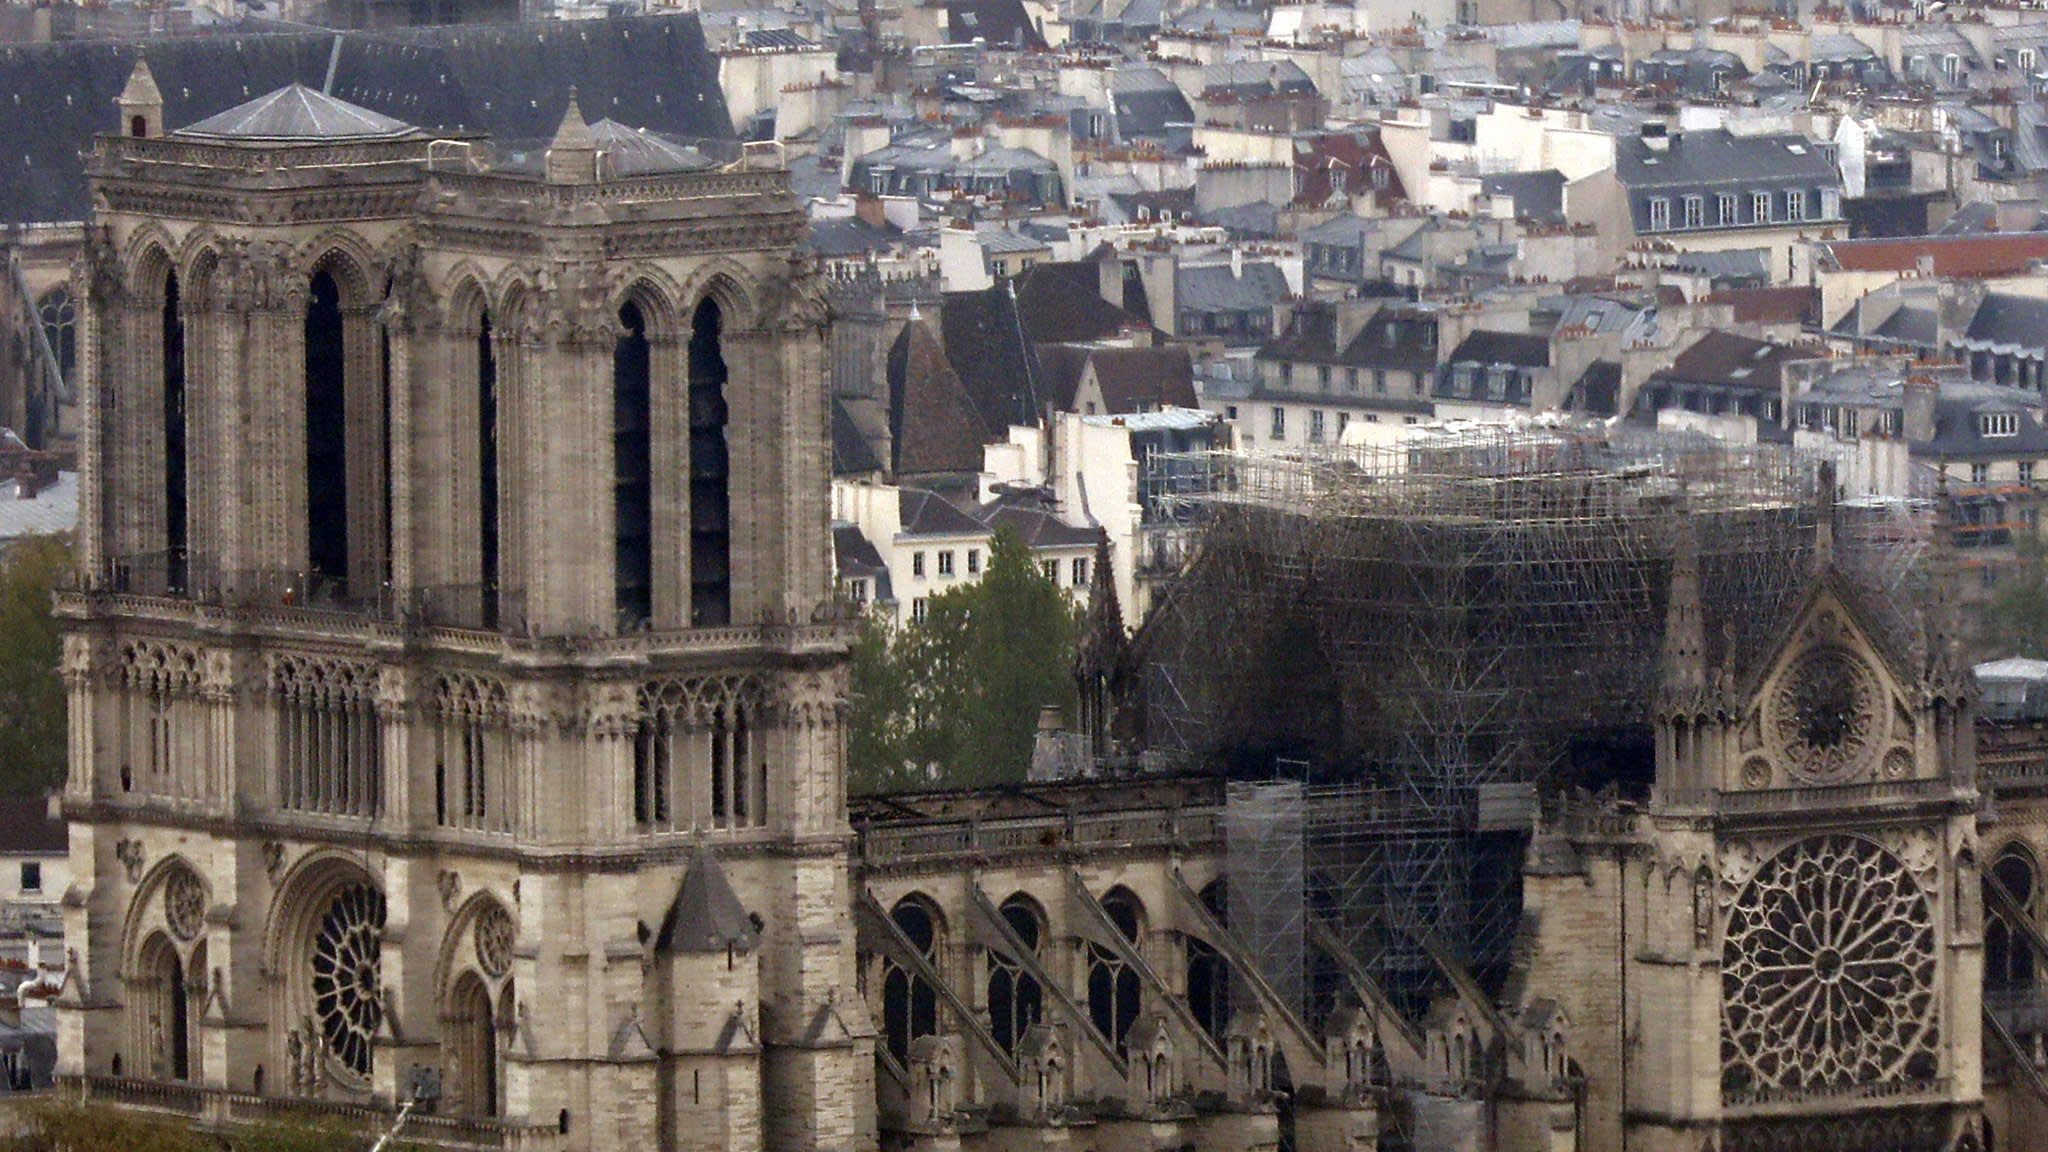 Macron calls for Notre-Dame to be restored within five years | Financial Times